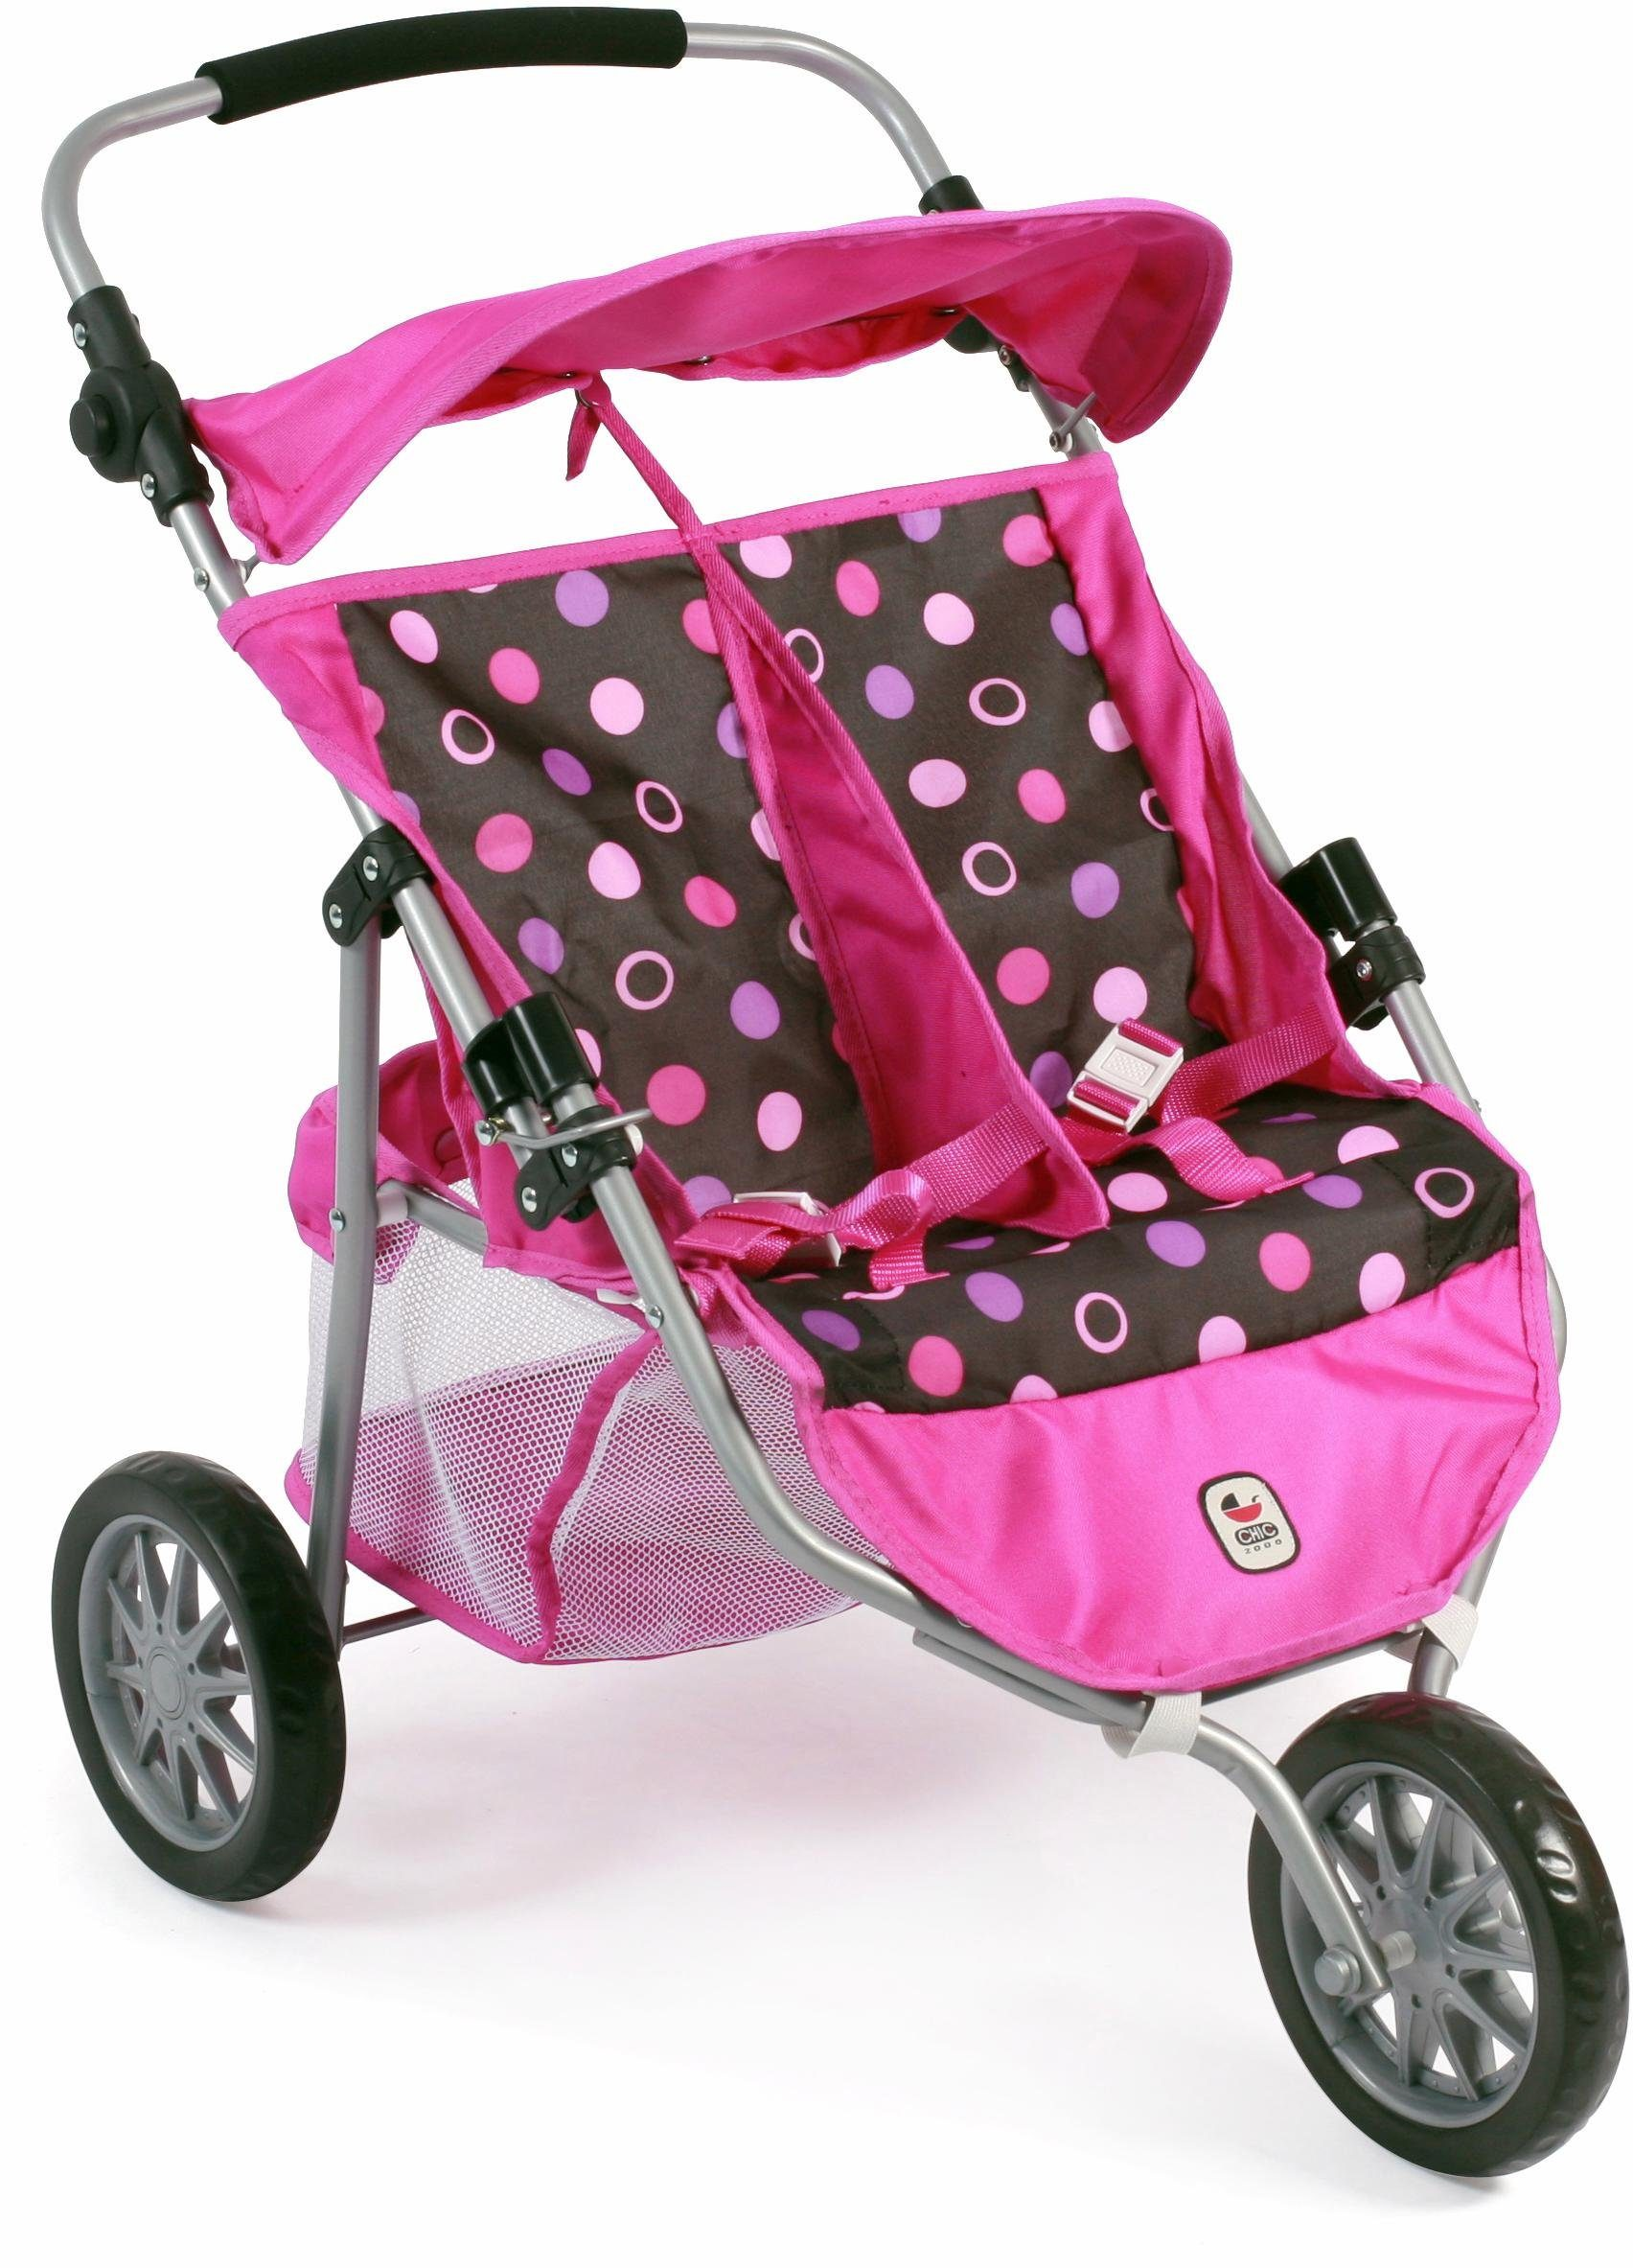 CHIC2000 Puppen Zwillingsjogger, »Jogger, grau-pink«